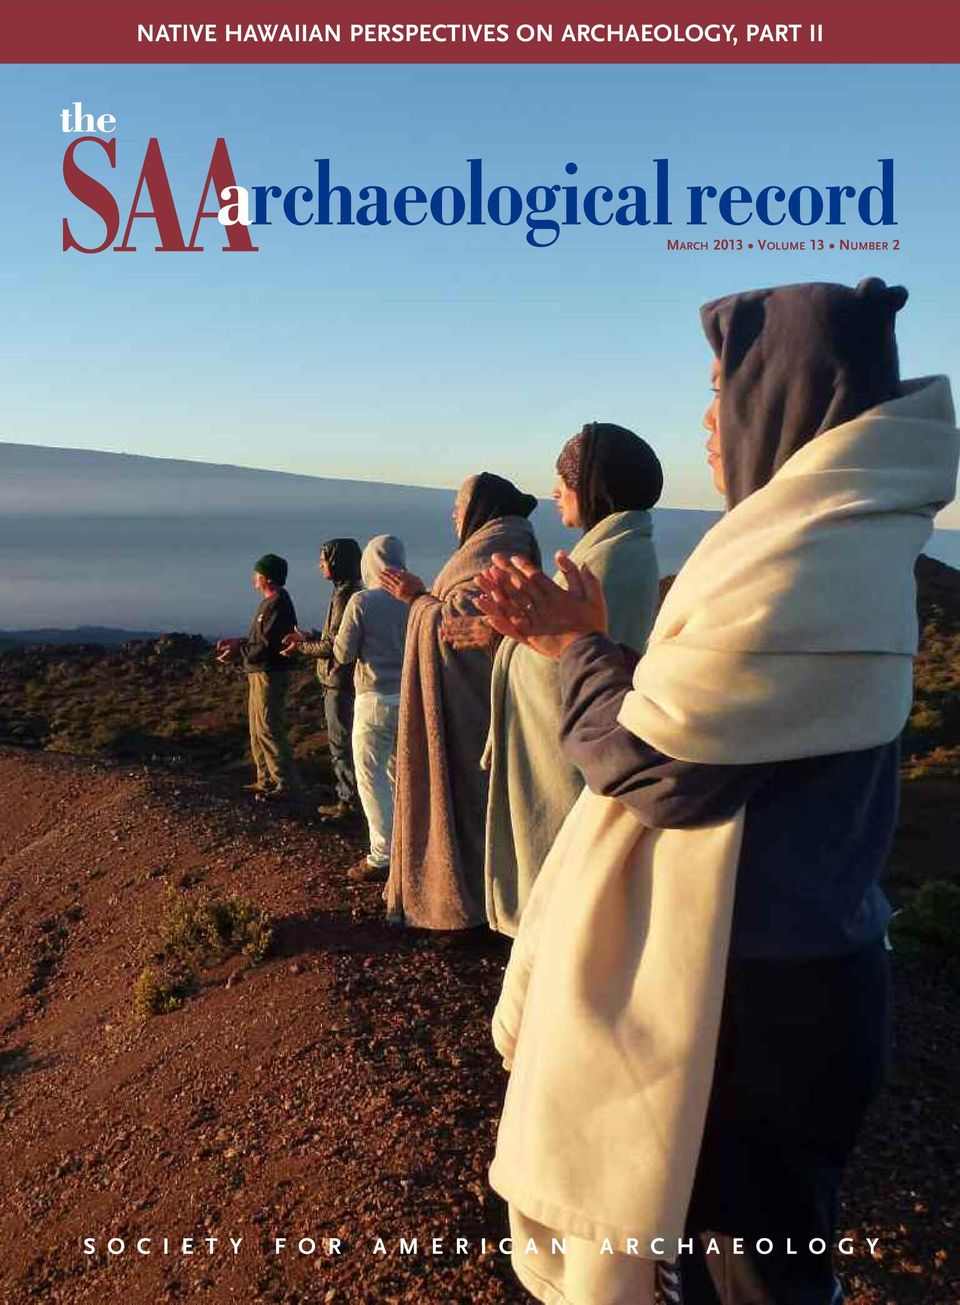 archaeological record MARCH 2013 VOLUME 13